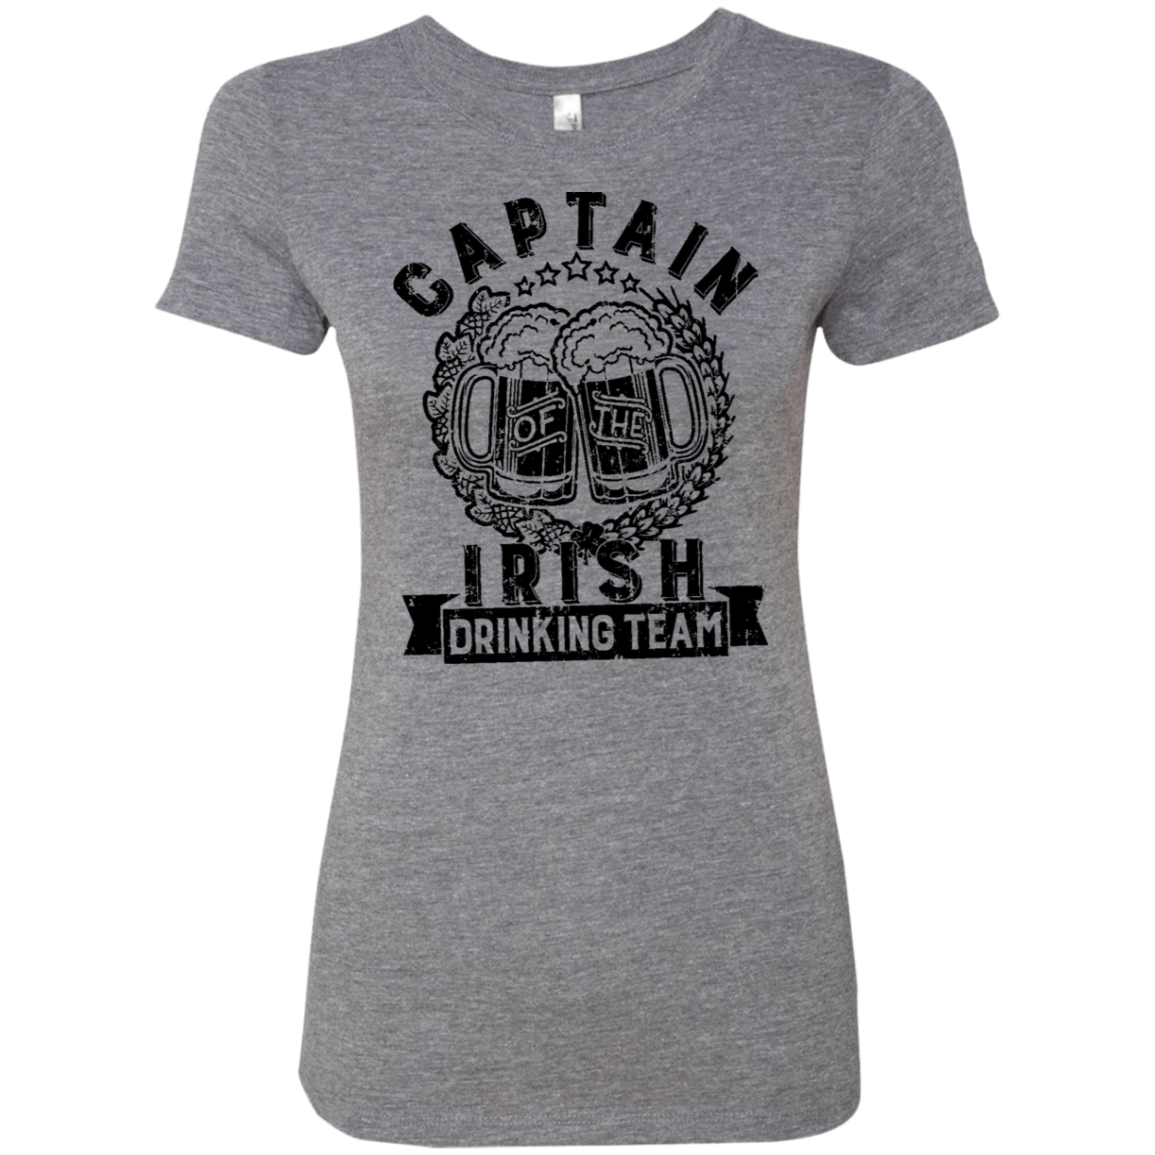 Captain Irish Drinking Team Women's Classic Tee